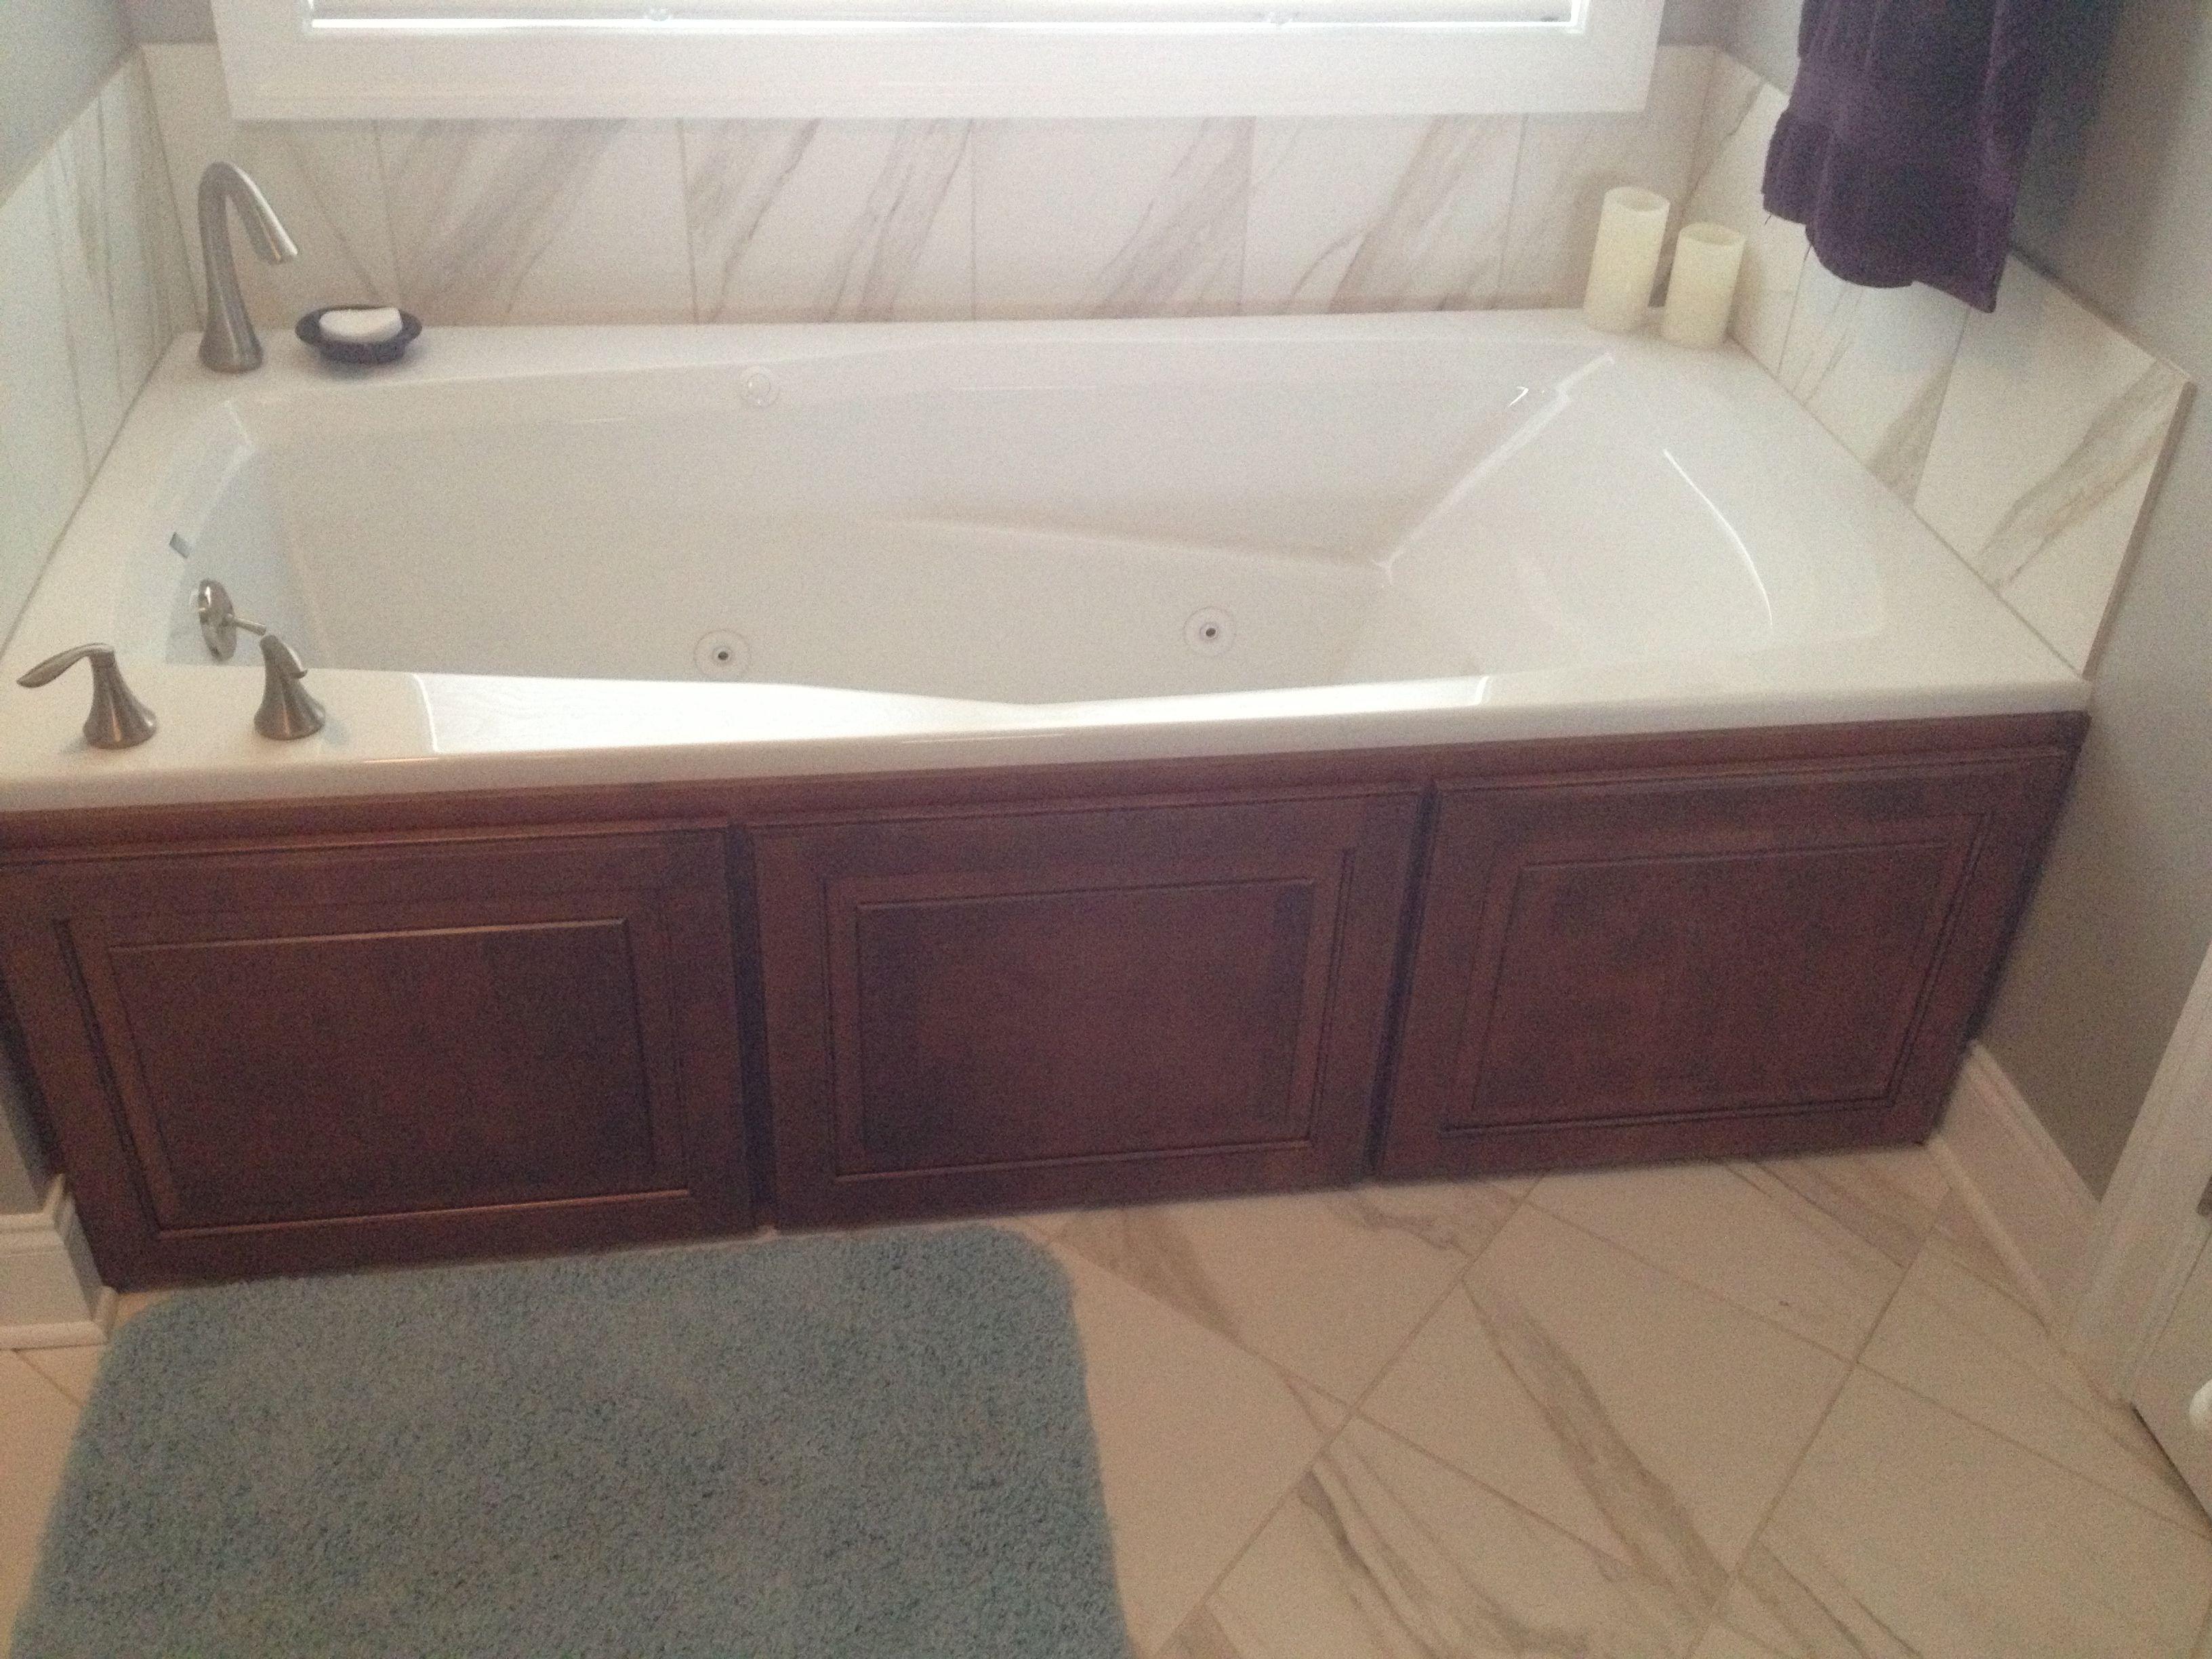 Signature Custom Cabinets Custom Jacuzzi Tub Surround Work By Signature Cabinetry Design